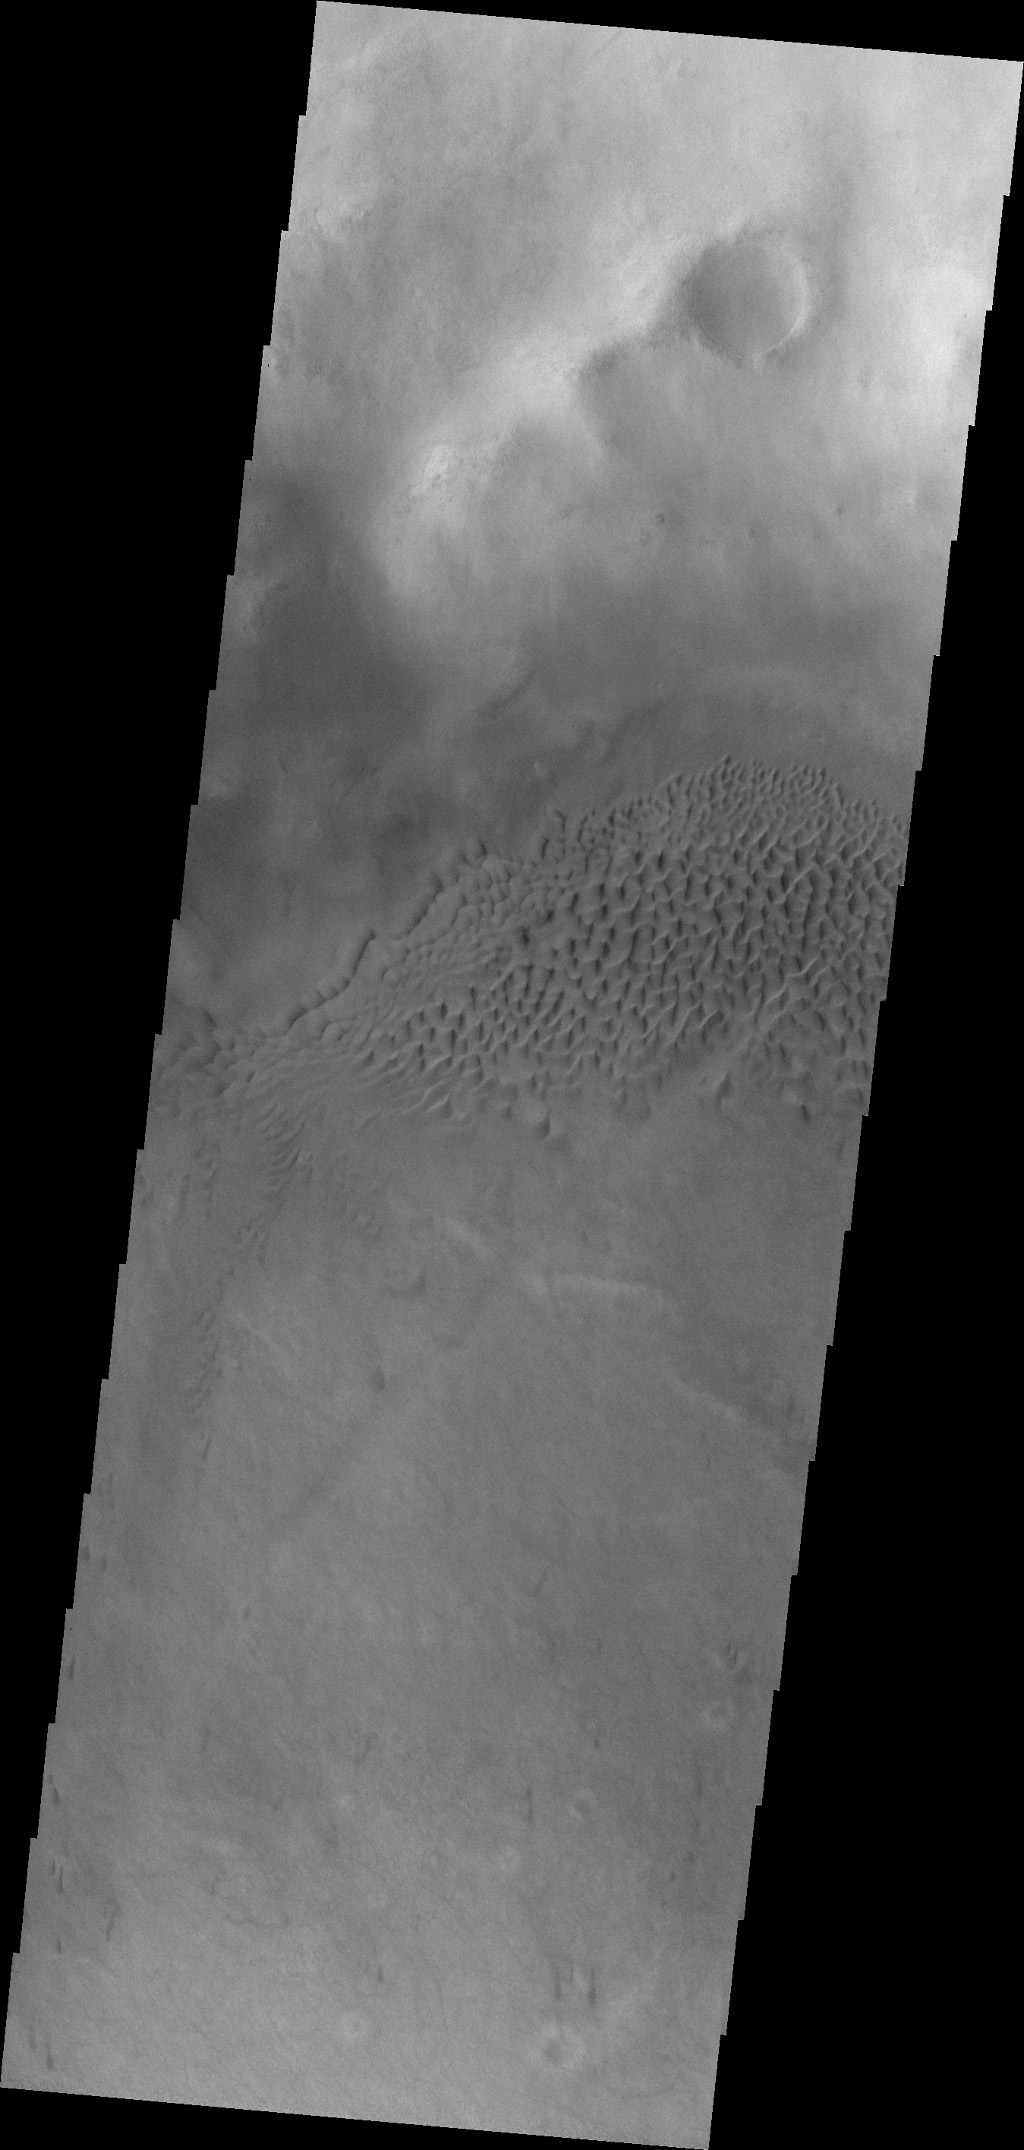 This image captured by NASA's 2001 Mars Odyssey spacecraft shows part of the dune field on the floor of Hussey Crater.